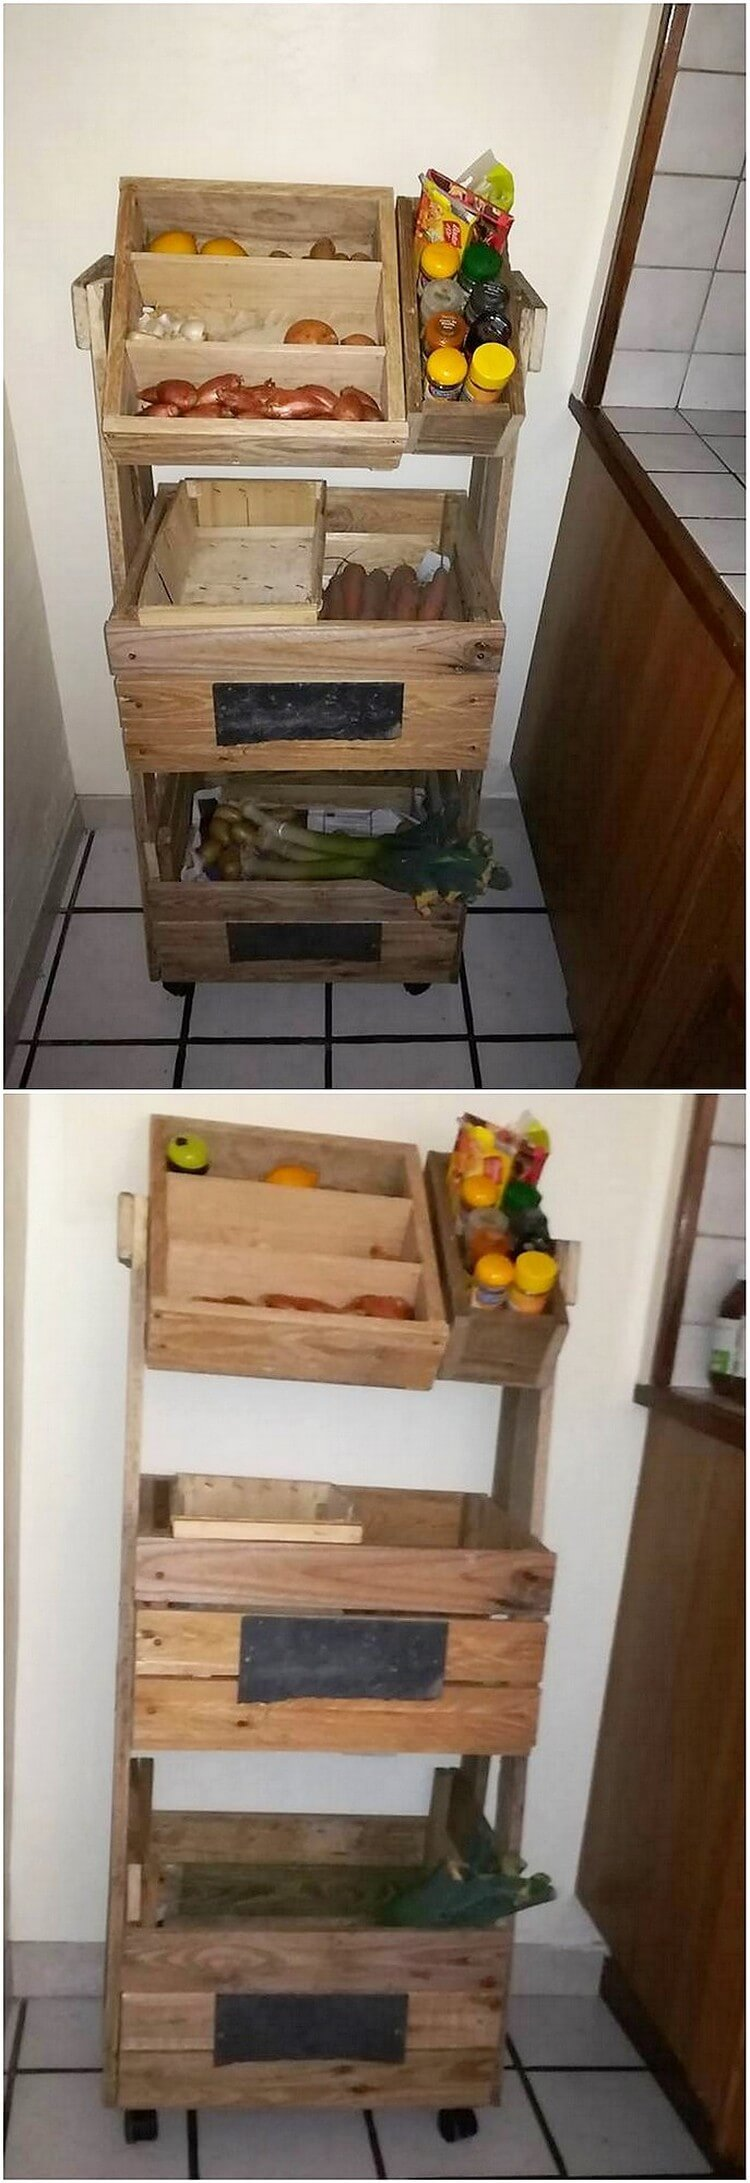 Pallet Vegetable and Fruit Rack